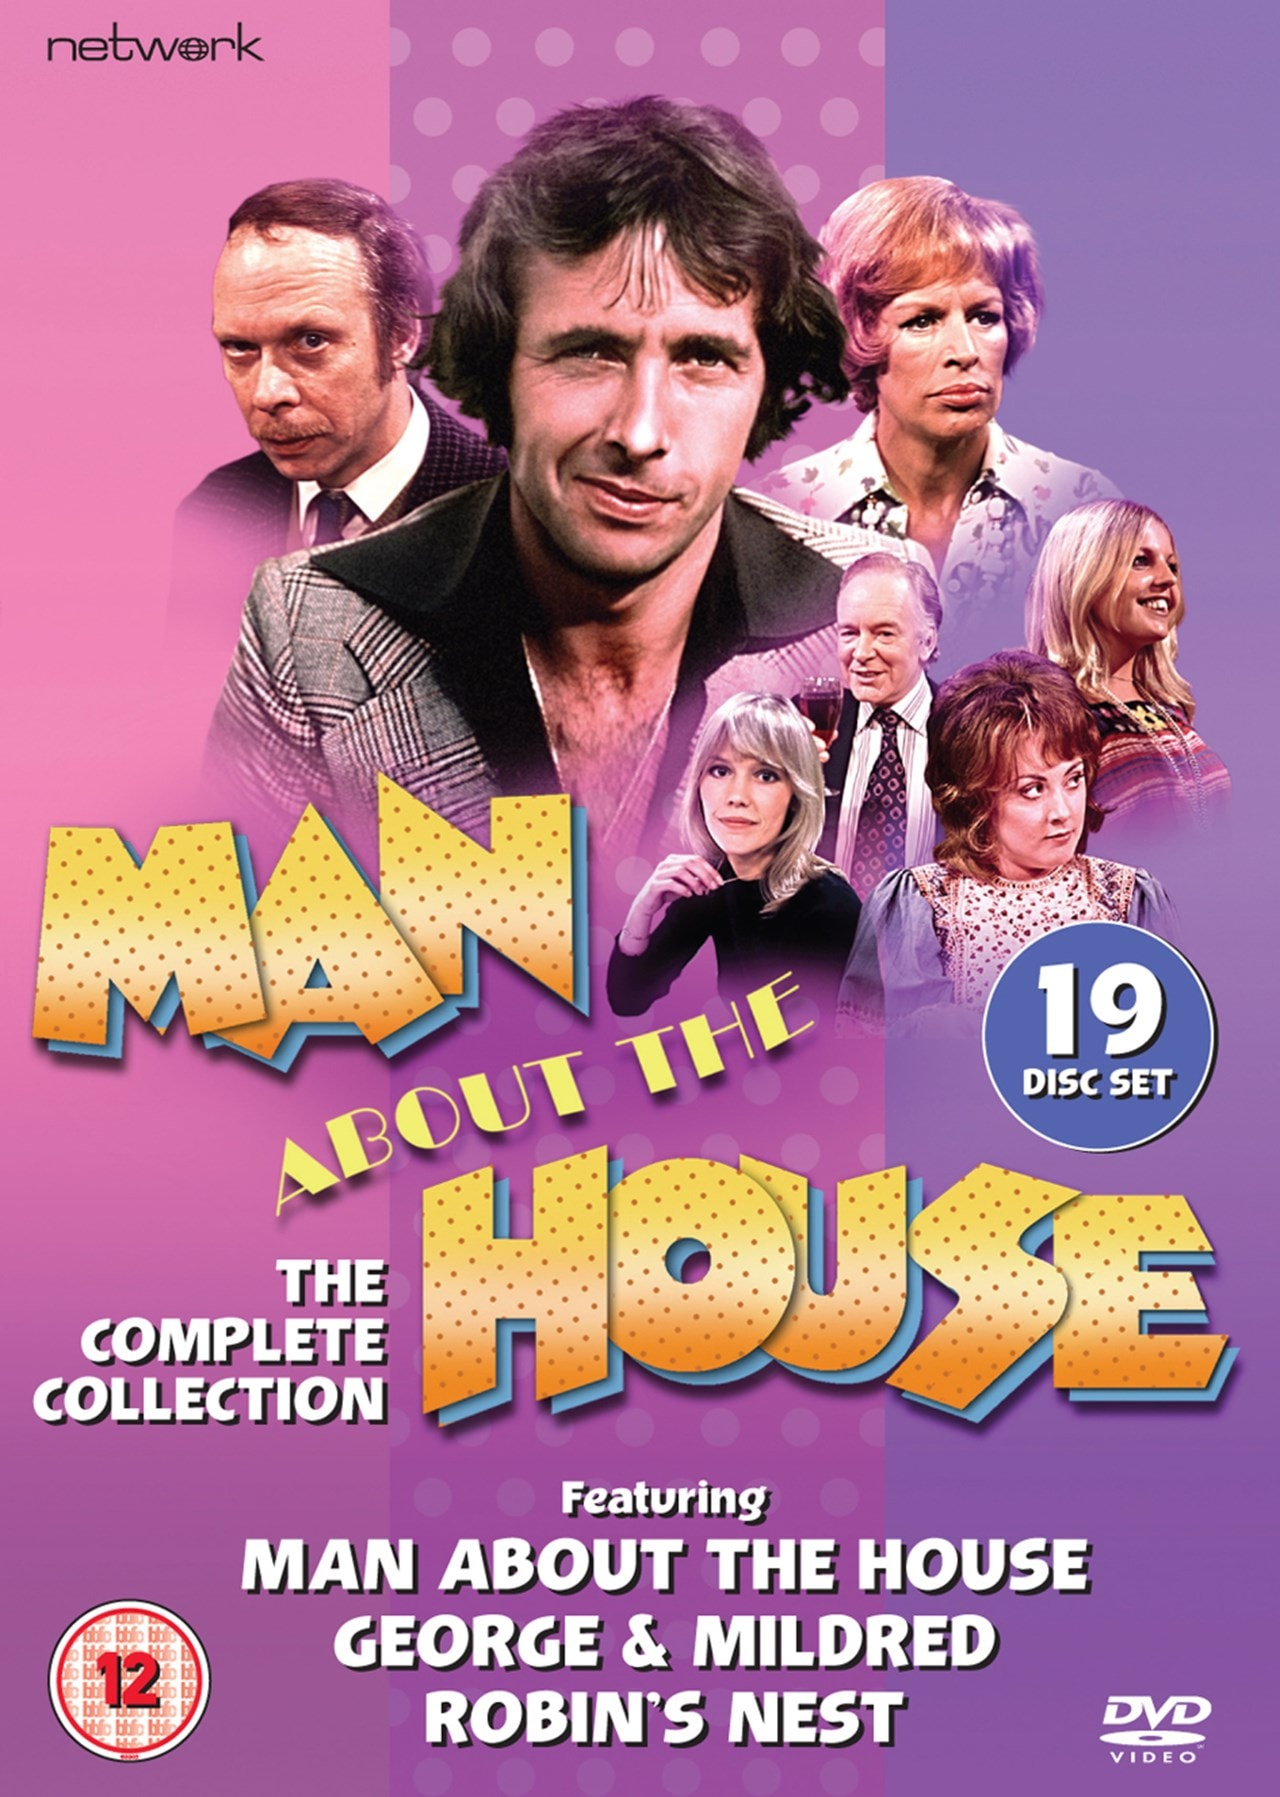 Man About The House The Complete Collection Dvd Box Set Free Shipping Over 20 Hmv Store